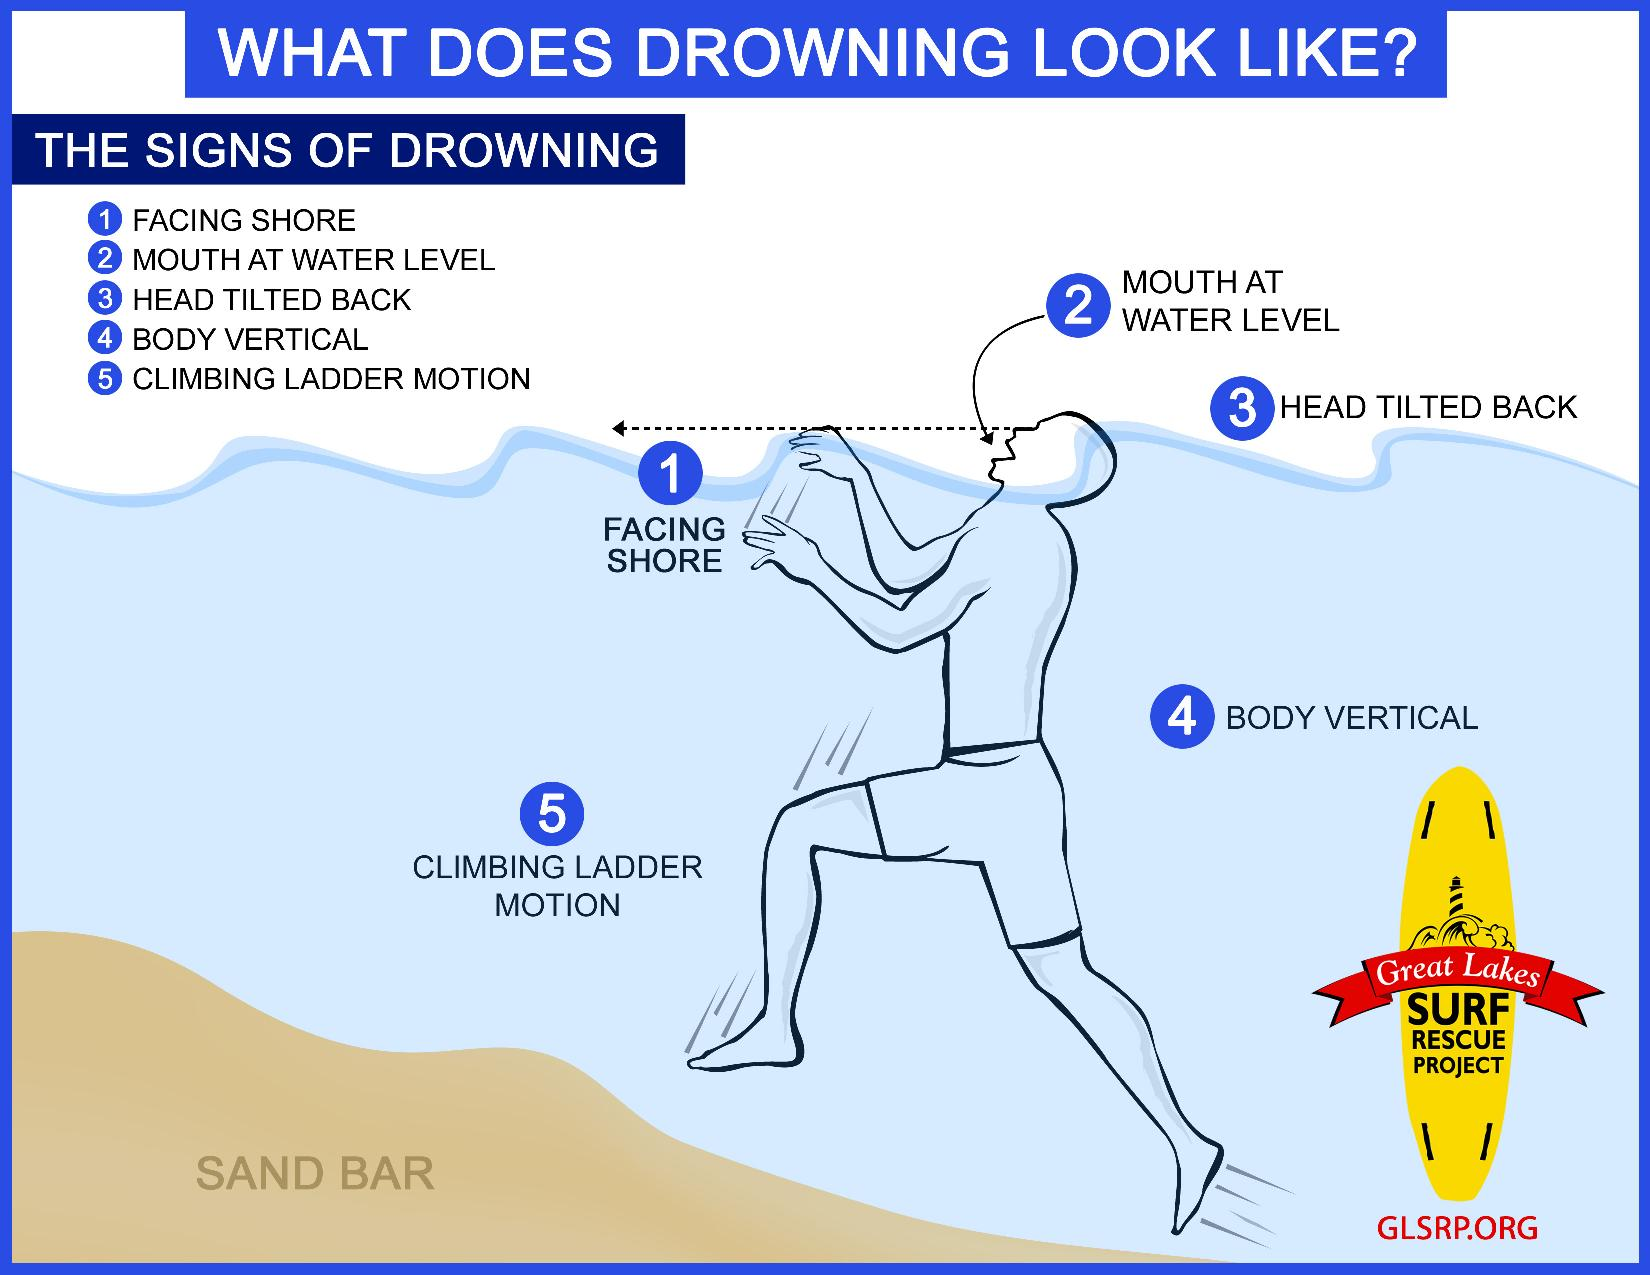 Infographic from Great Lakes Surf Rescue Project showing what drowning looks like